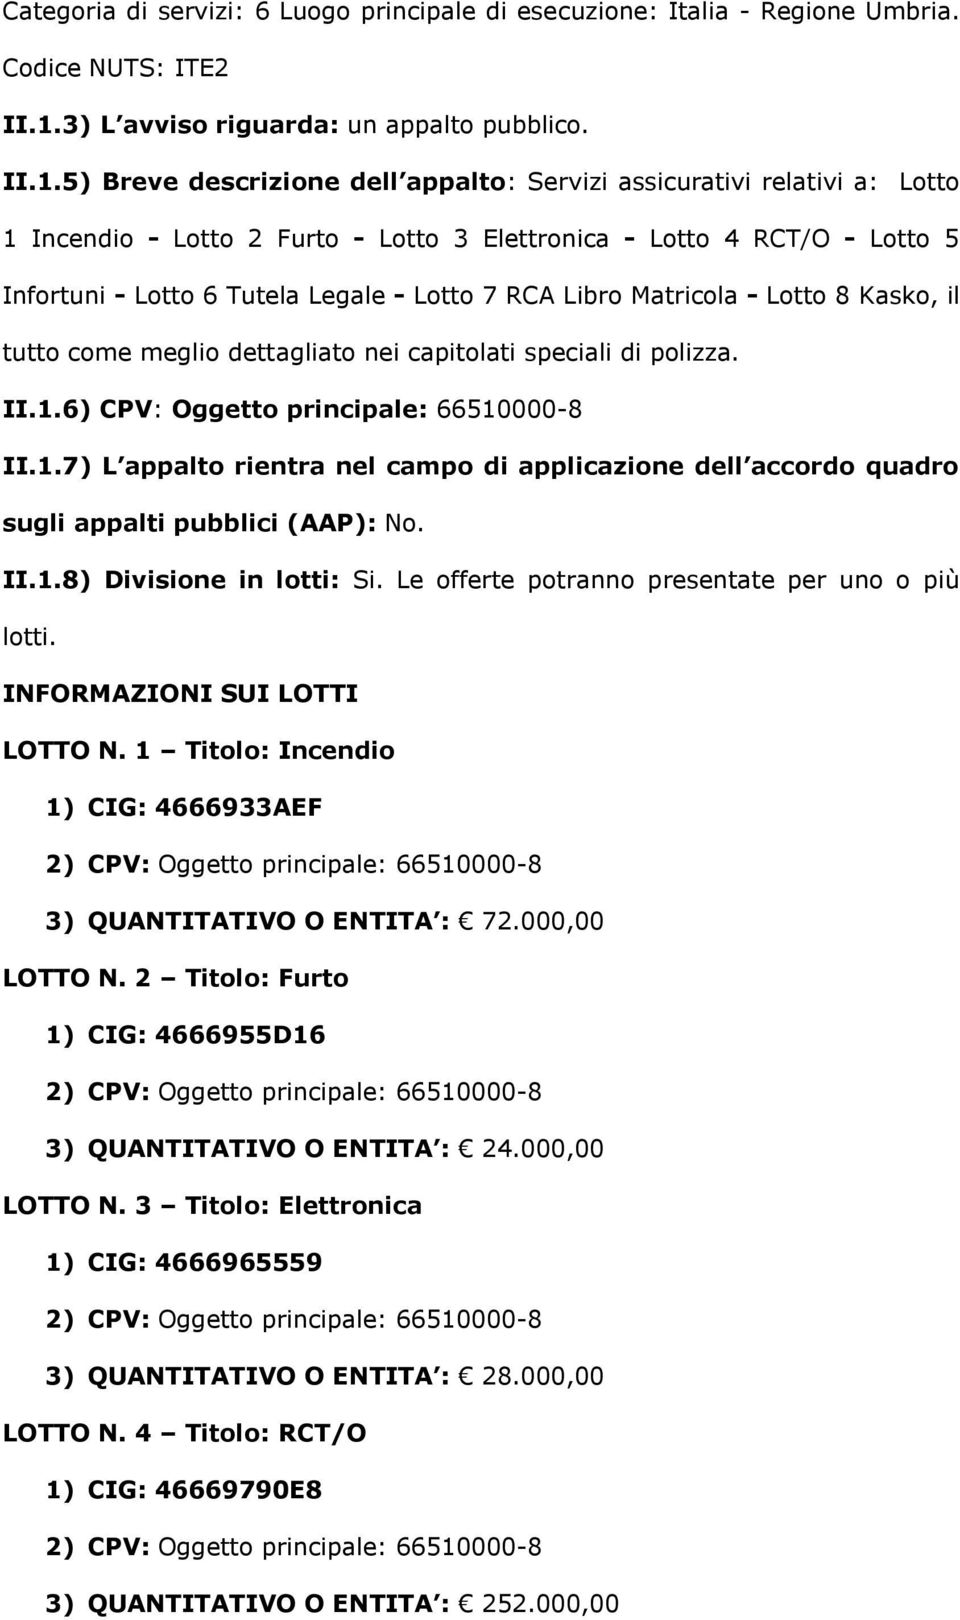 5) Breve descrizione dell appalto: Servizi assicurativi relativi a: Lotto 1 Incendio - Lotto 2 Furto - Lotto 3 Elettronica - Lotto 4 RCT/O - Lotto 5 Infortuni - Lotto 6 Tutela Legale - Lotto 7 RCA